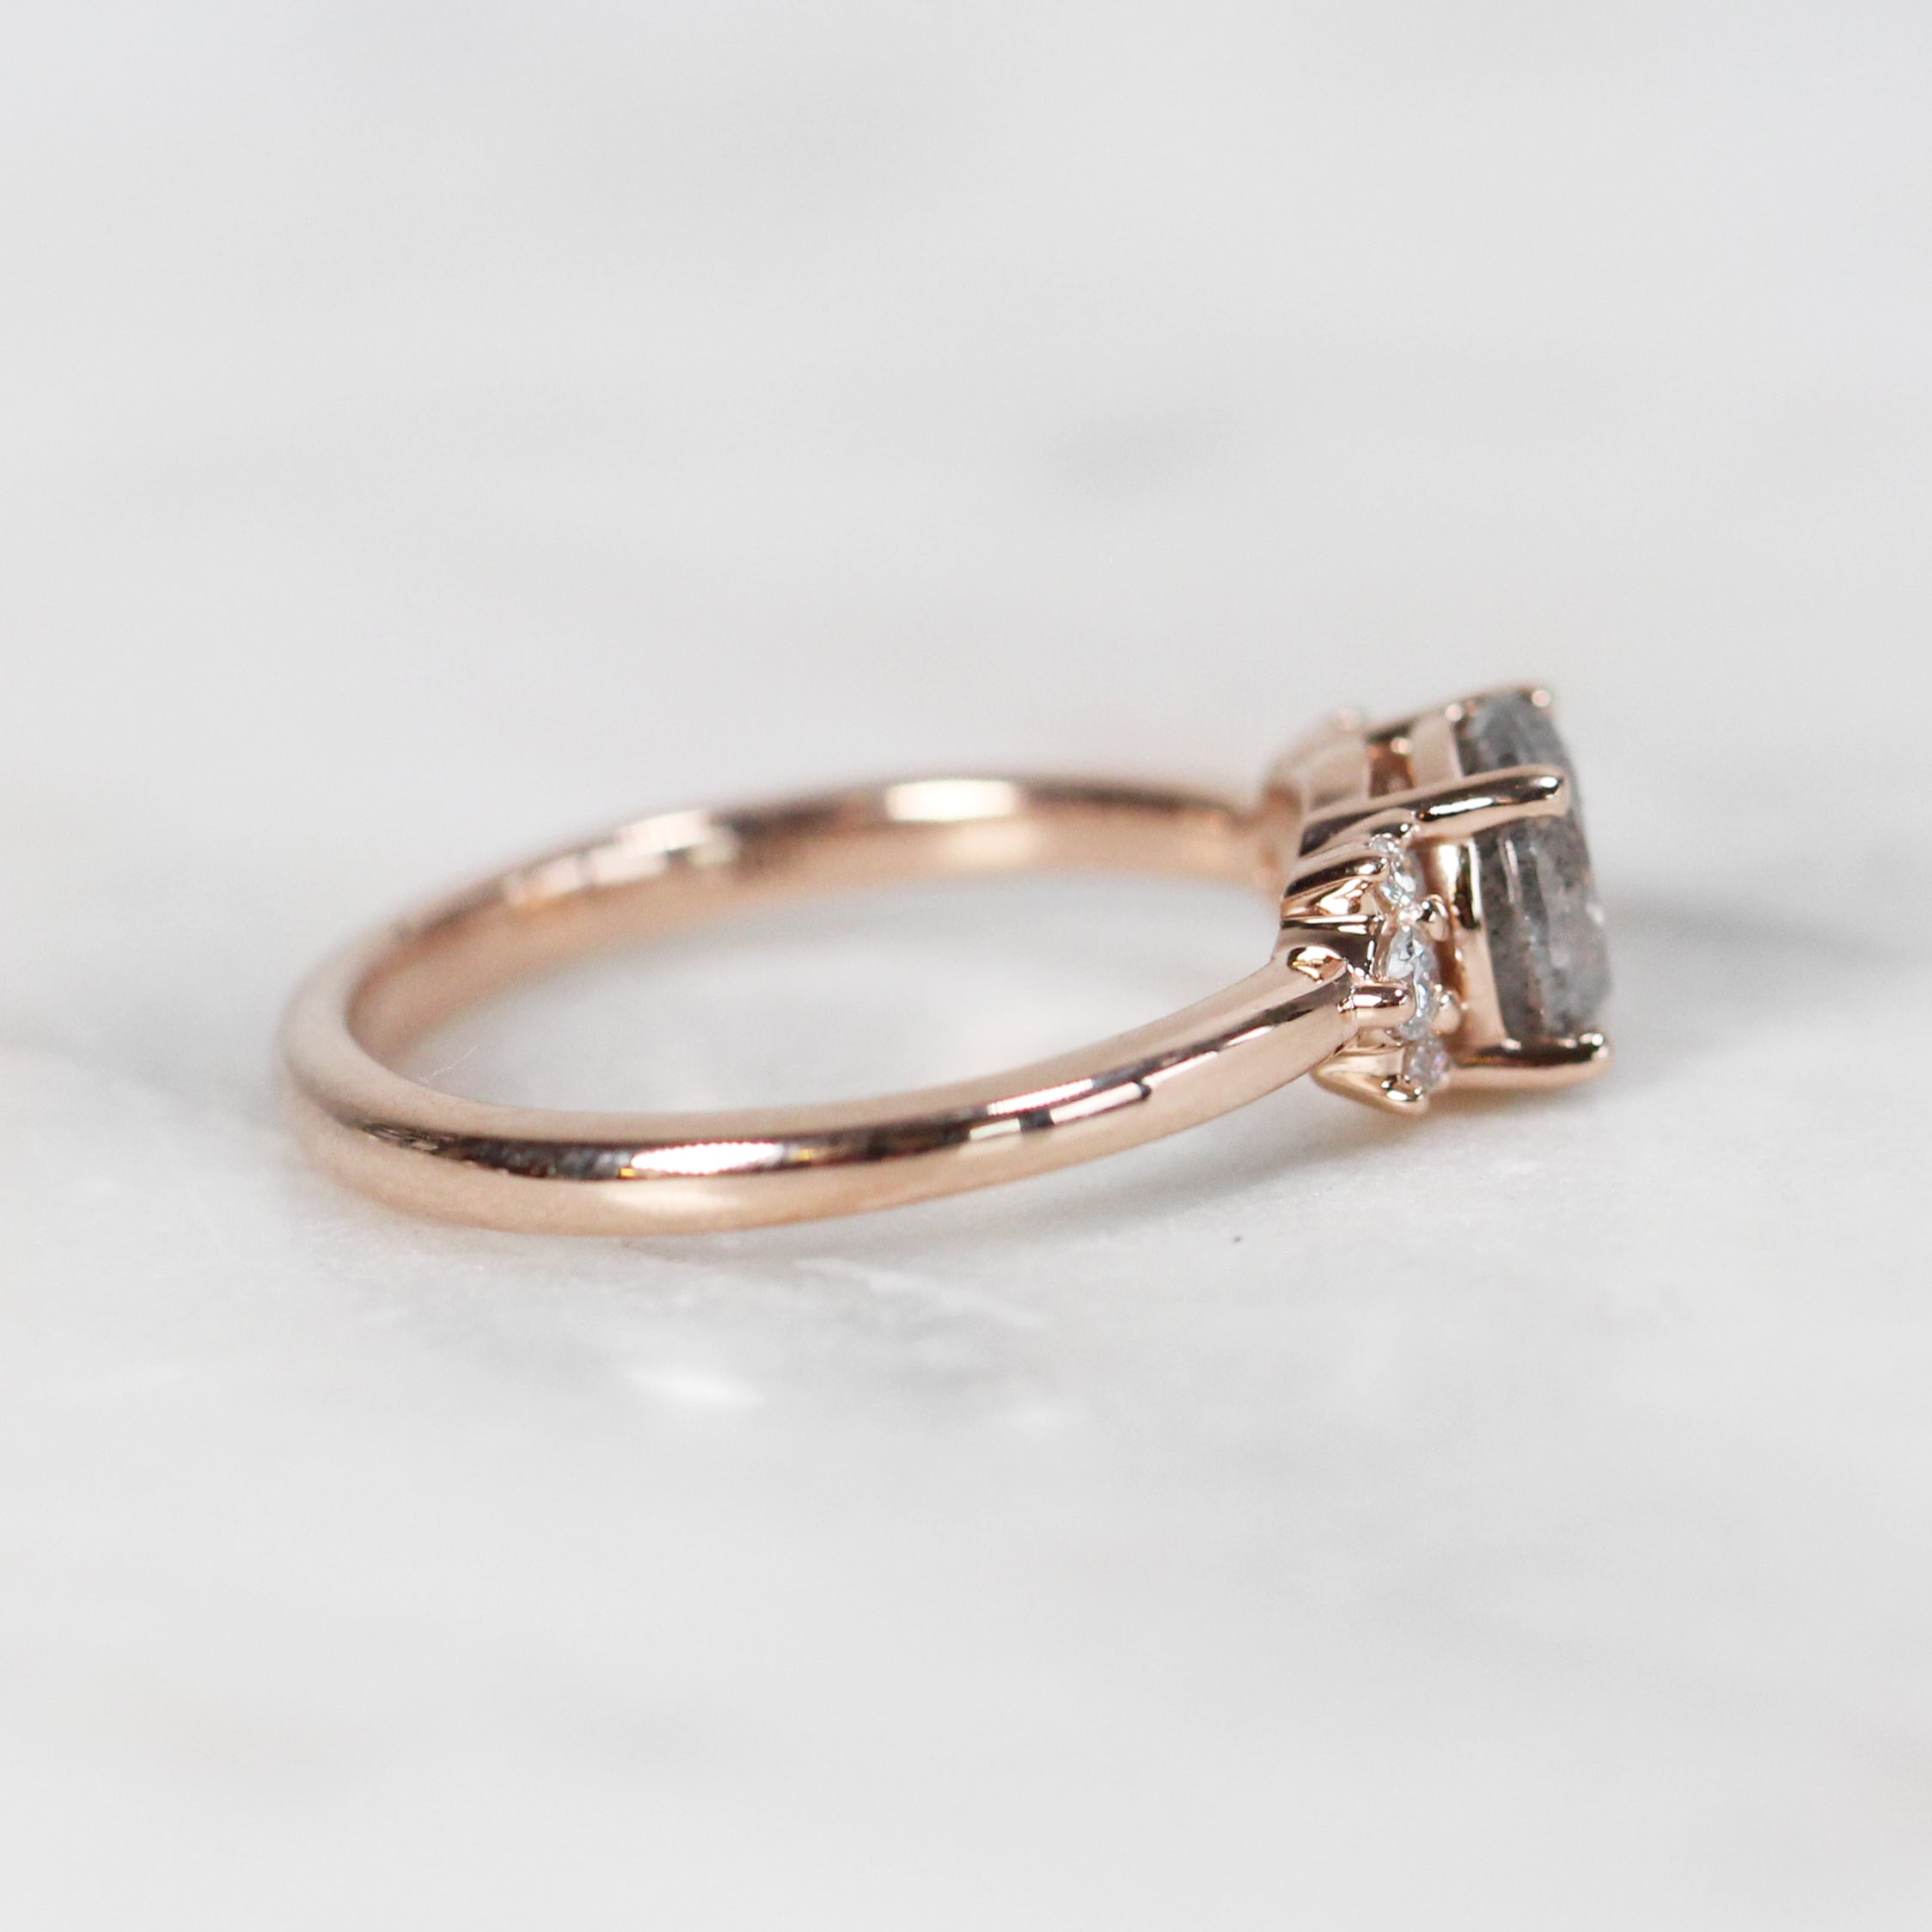 Loren Ring with 1.19ct Brilliant Round Celestial Diamond in 10k Rose Gold- Ready to Size and Ship - Celestial Diamonds ® by Midwinter Co.